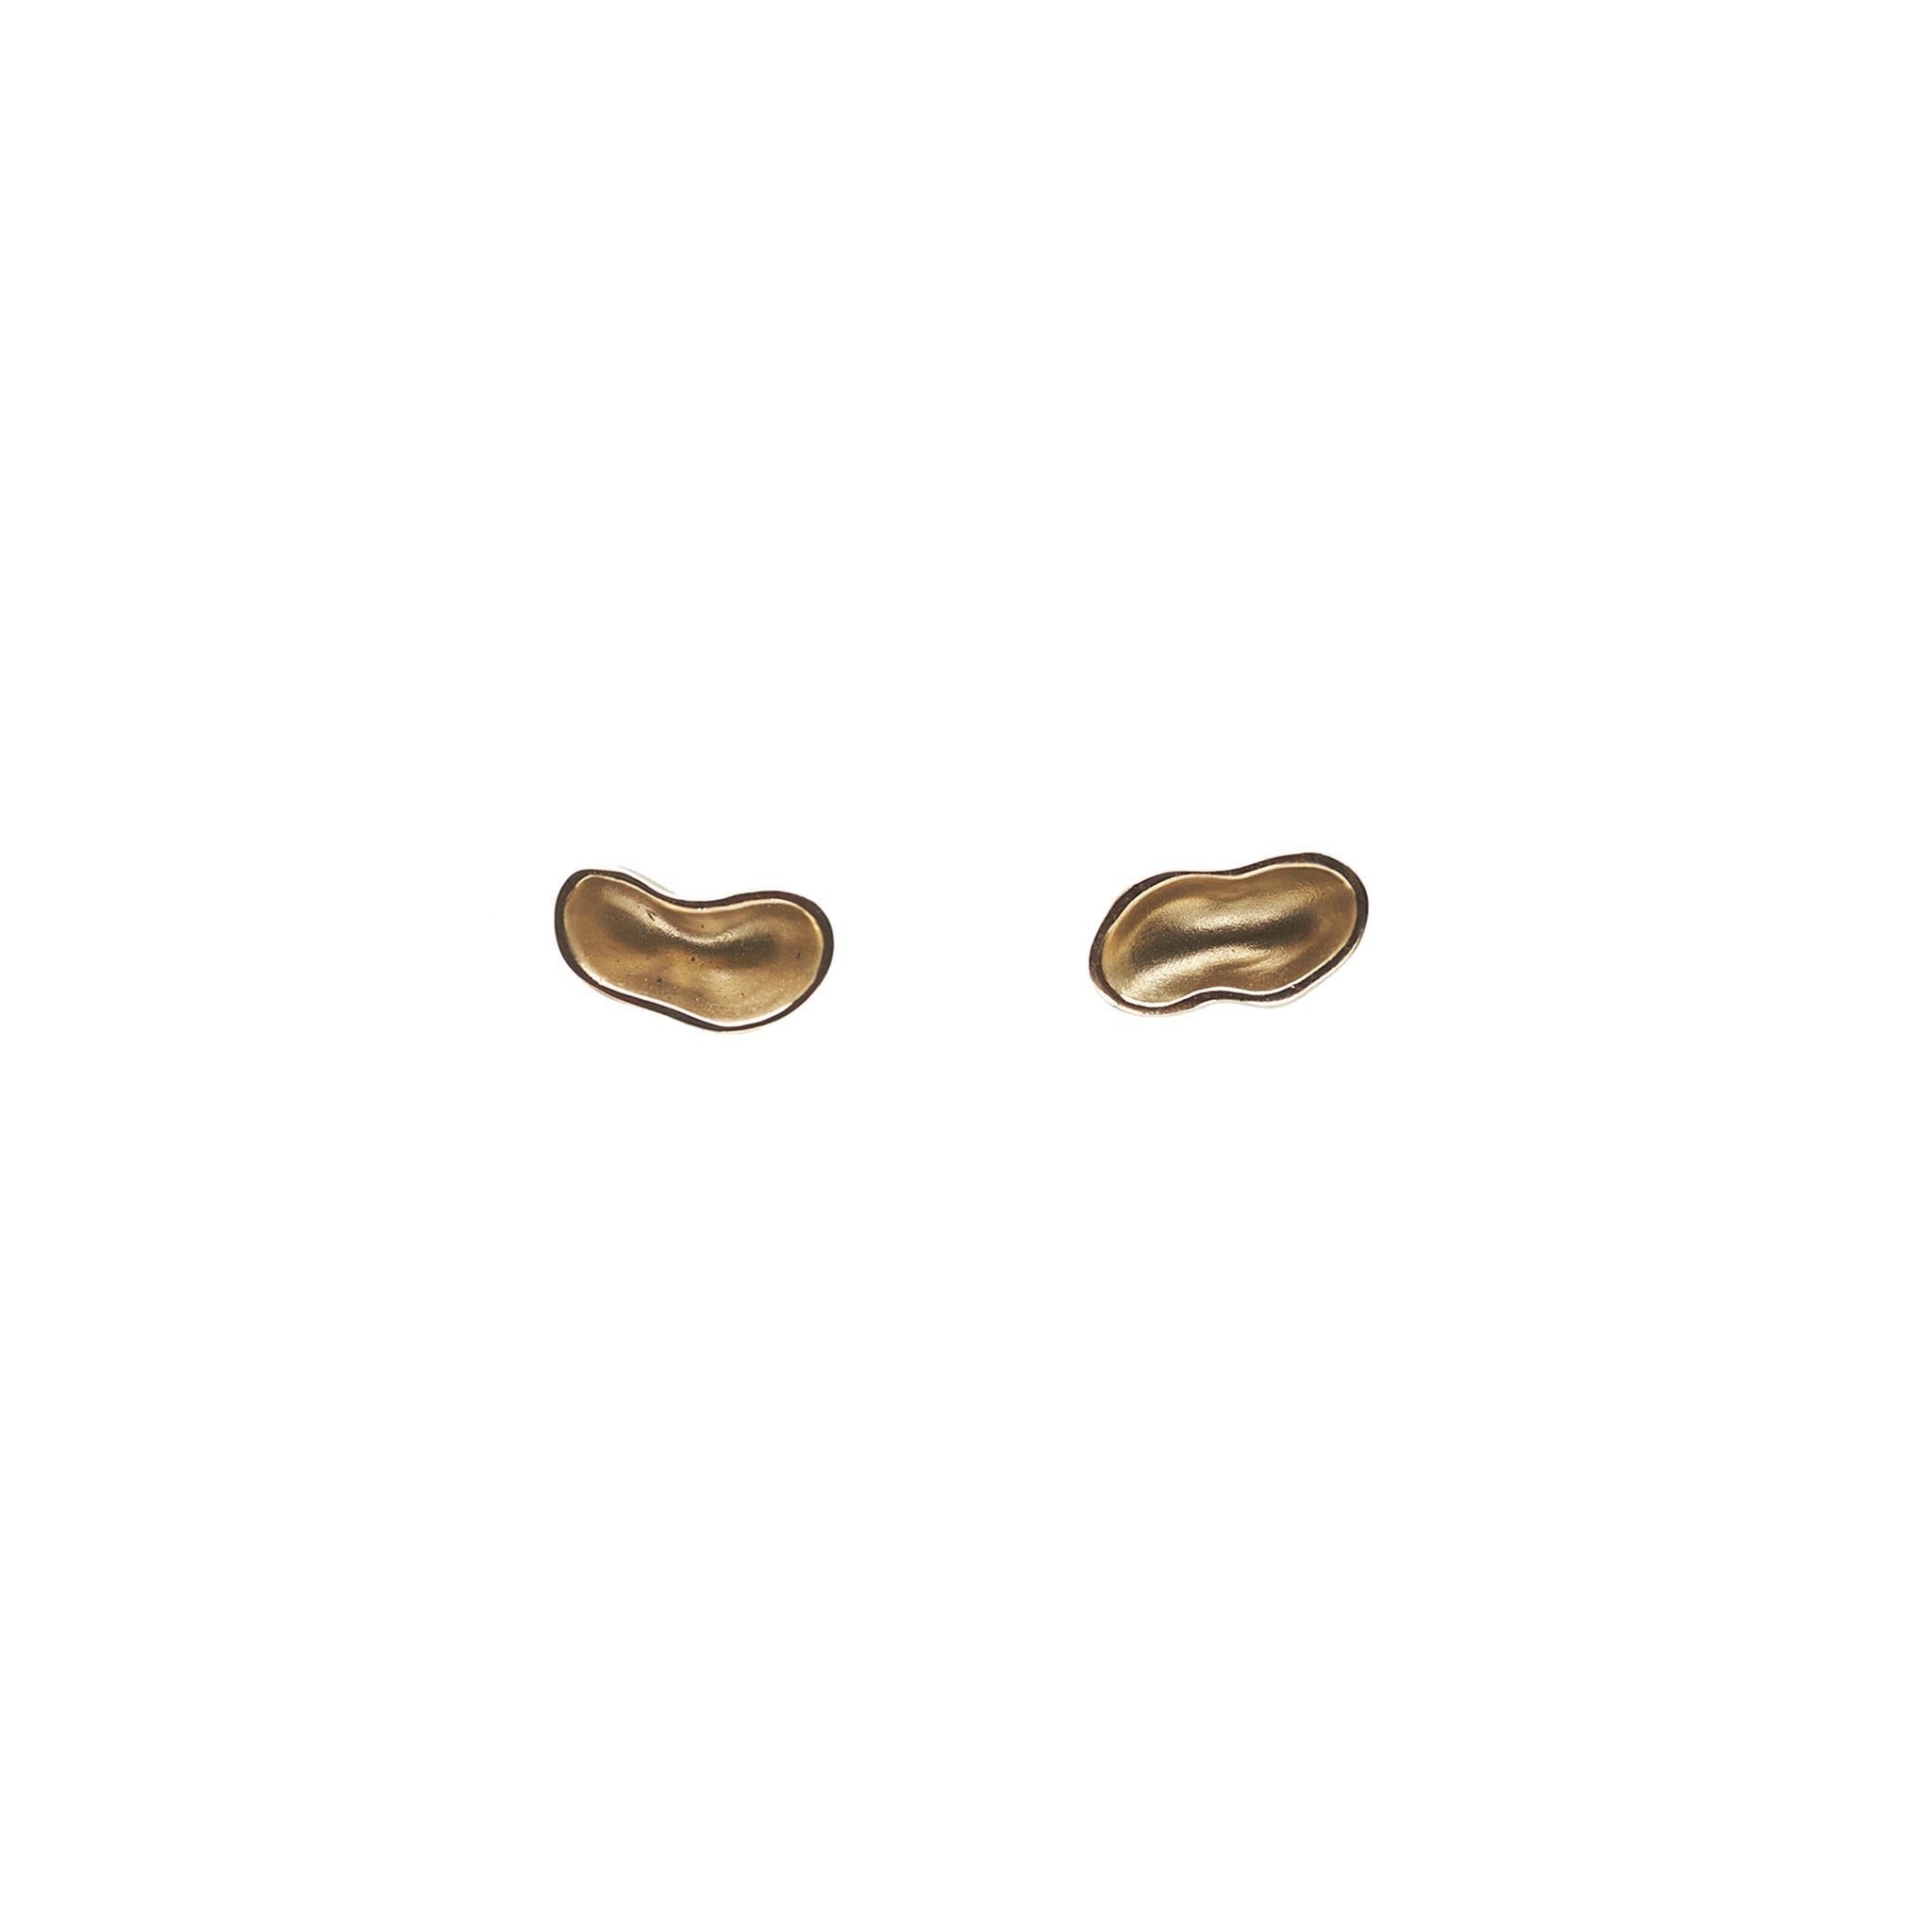 The Straits Finery organic mismatched stud earrings in 14k solid gold